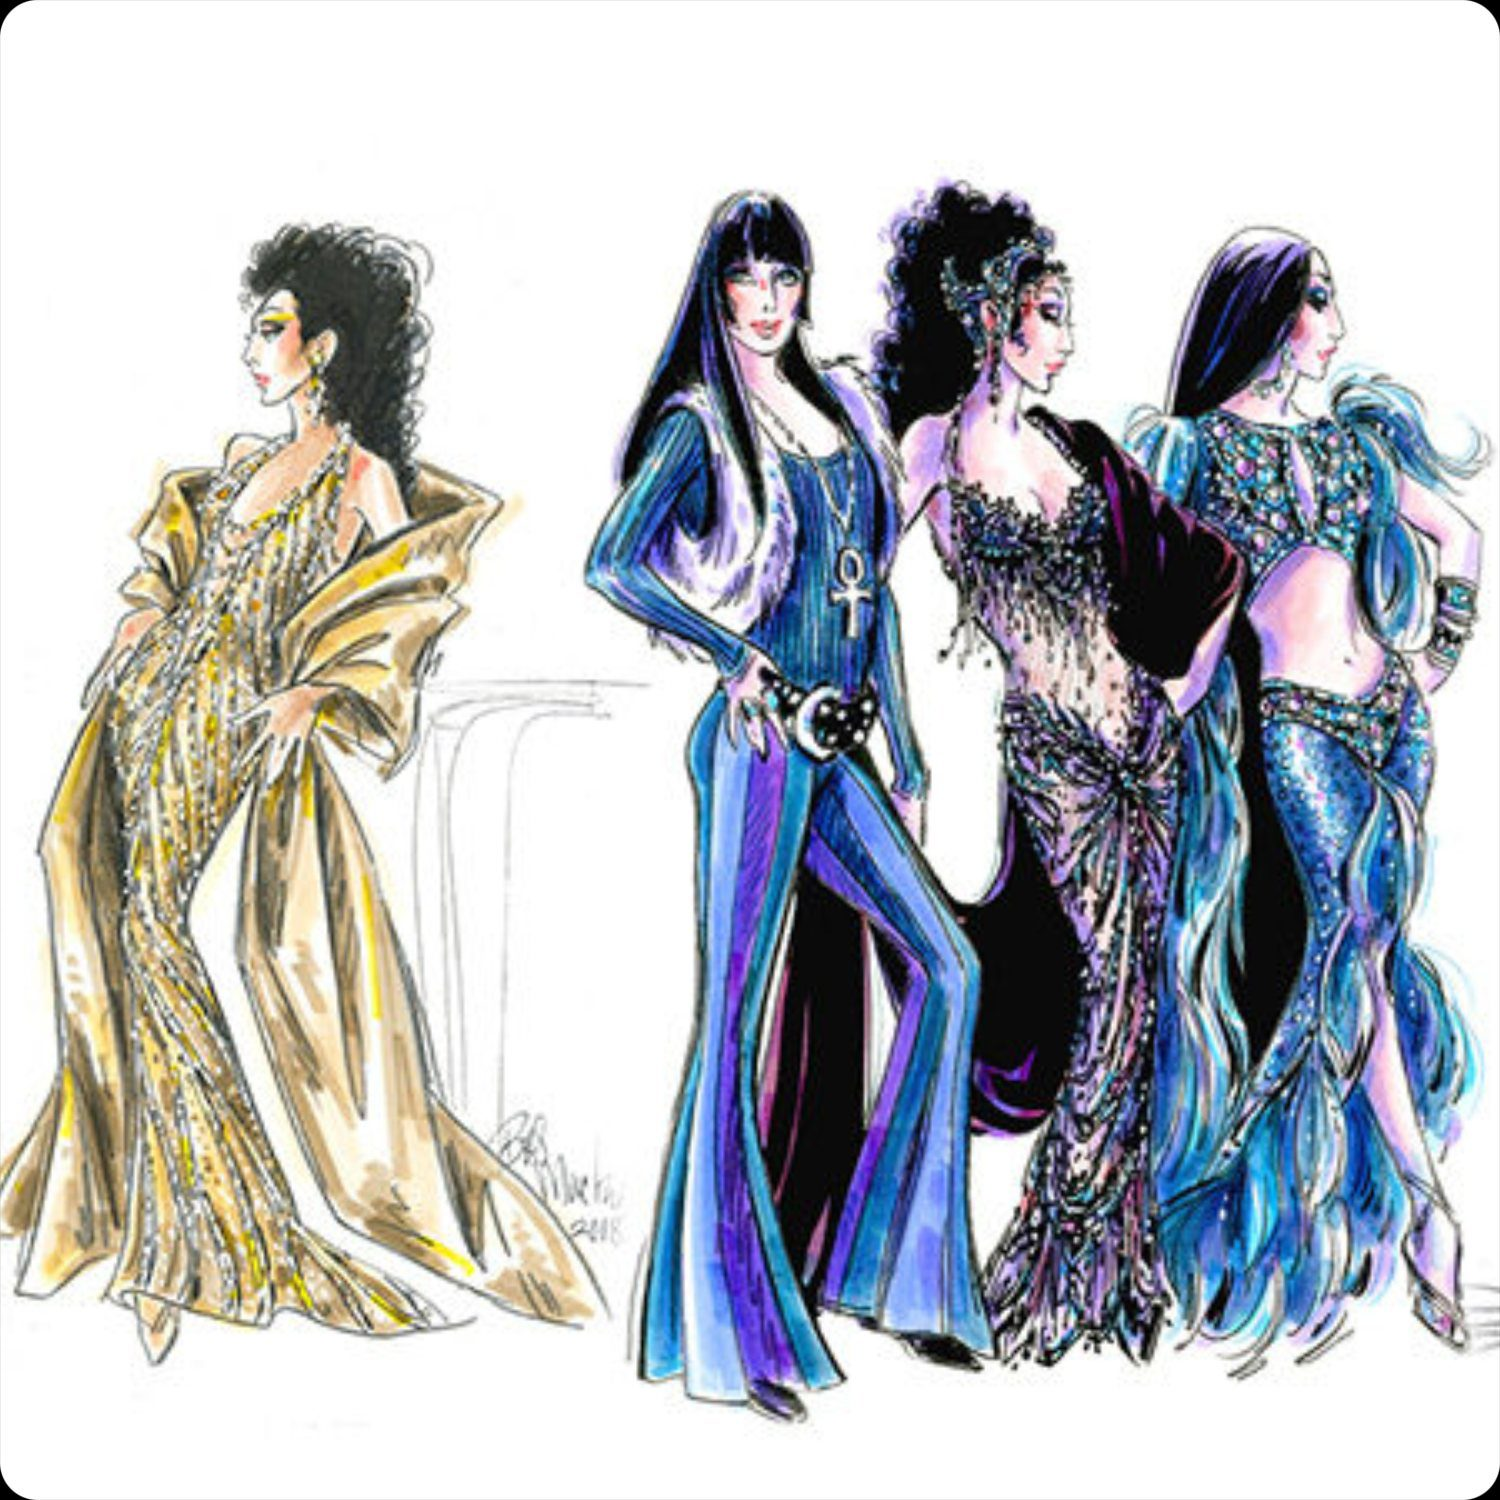 Costumes of Bob Mackie for Cher 2018